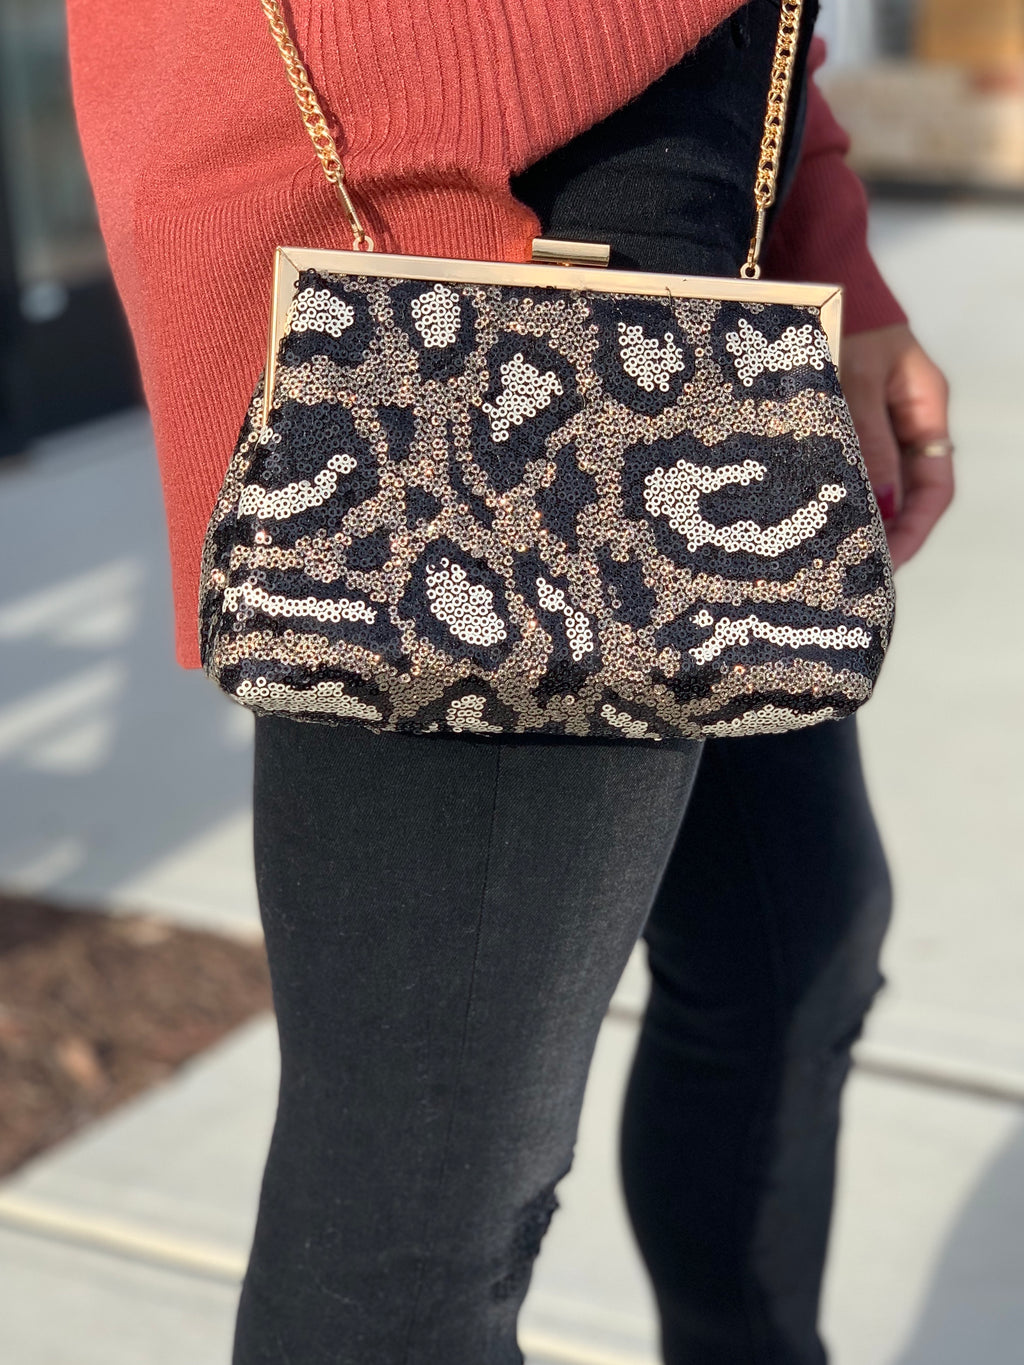 Leopard sequin clutch